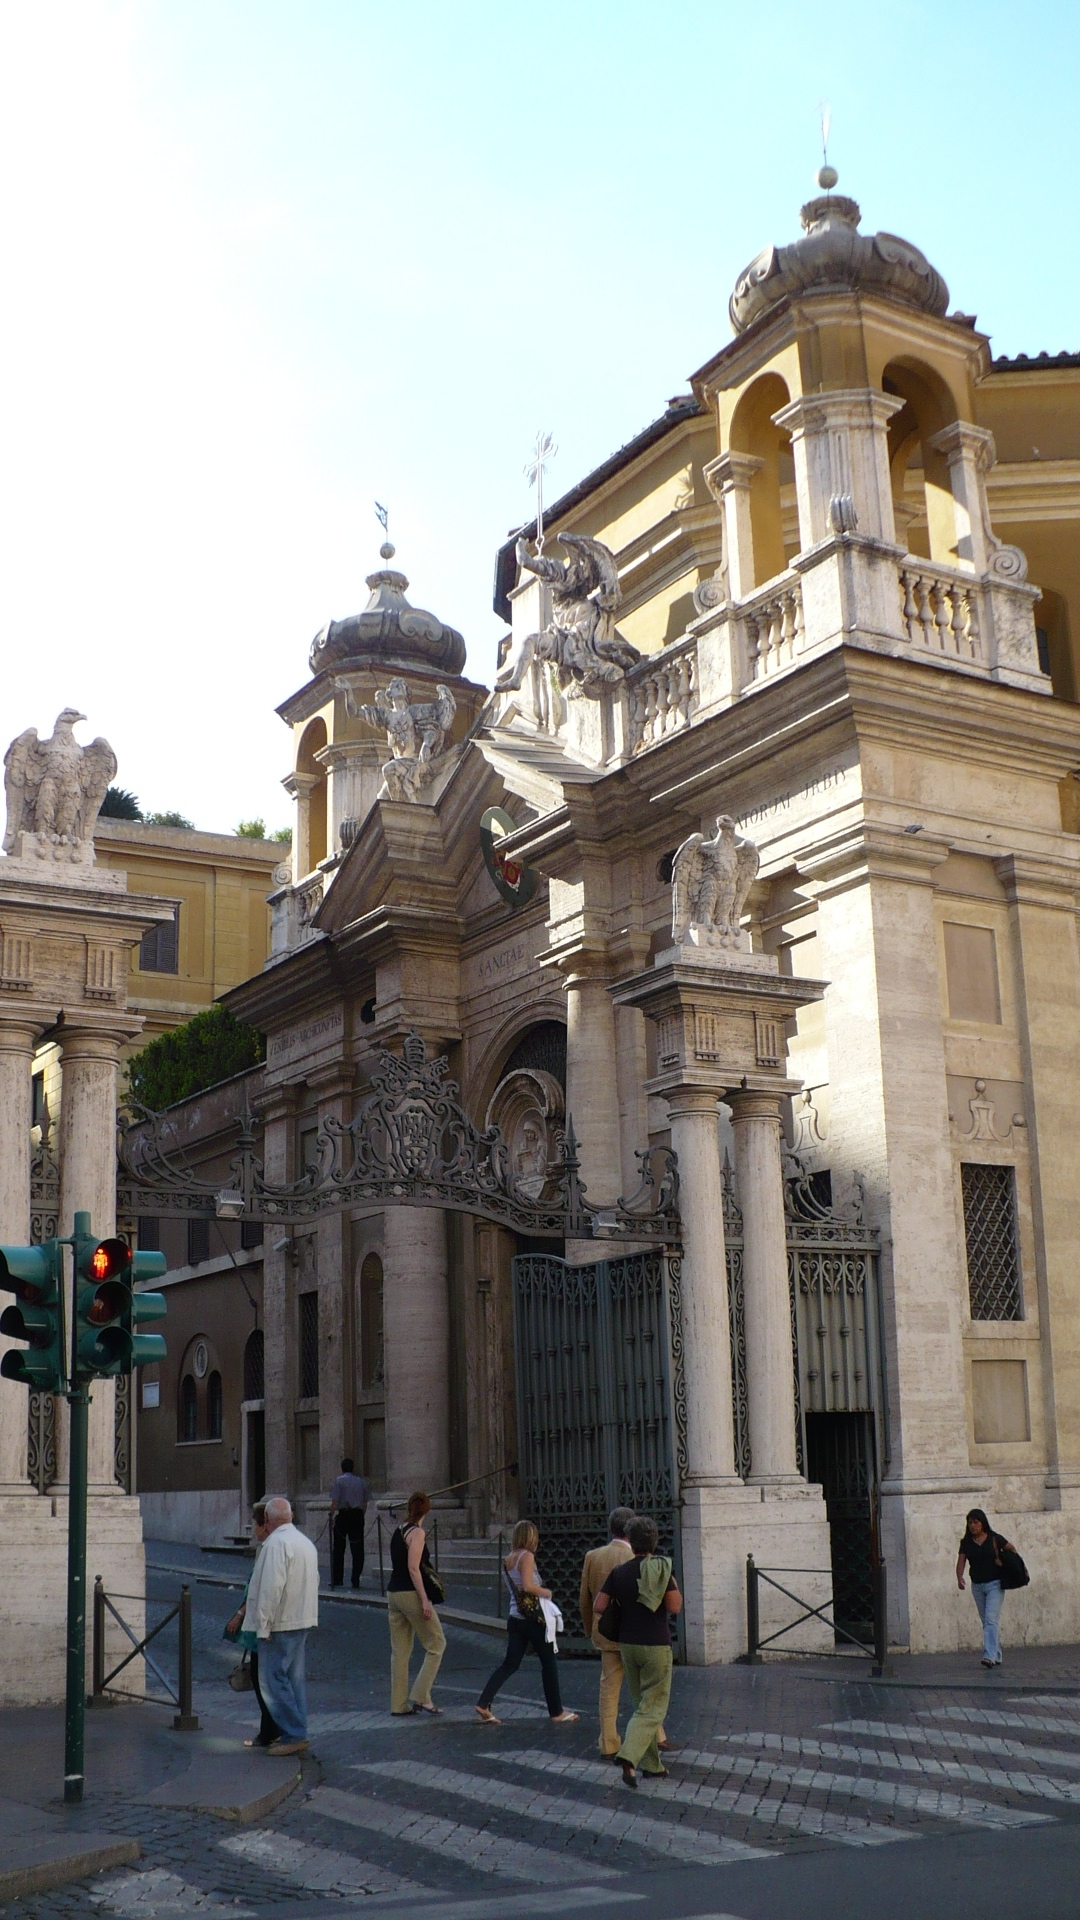 The Potra Santa'Anna. An elaborate stone gateway